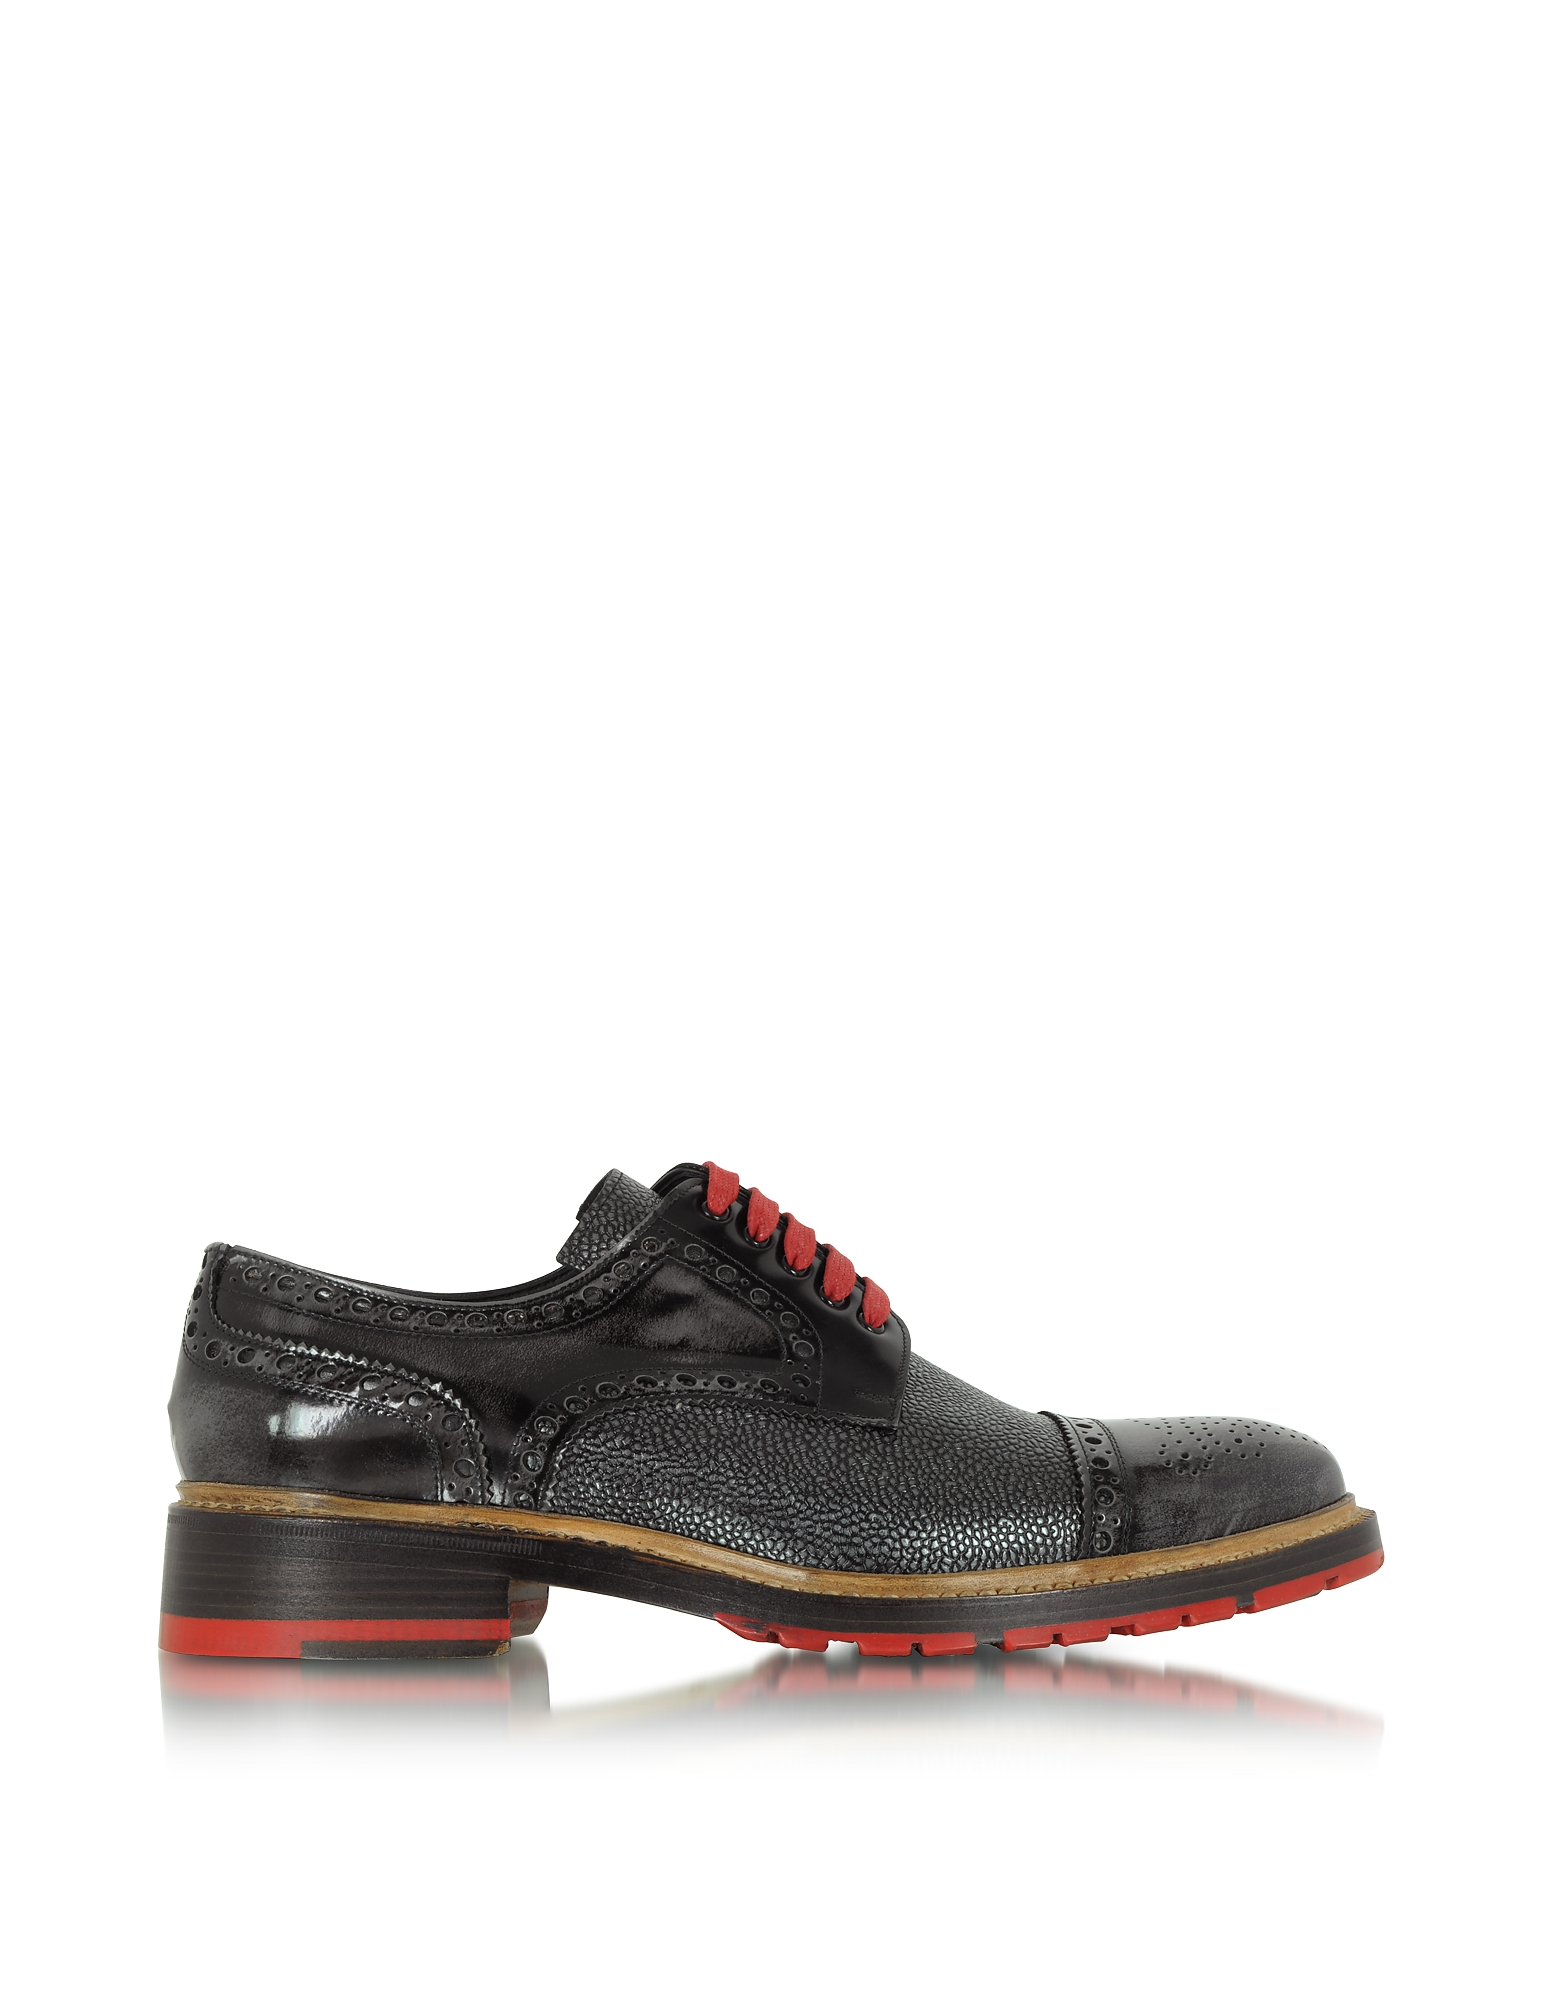 Forzieri Shoes, Italian Handcrafted Smoke Black and Graphite Leather Derby Shoe